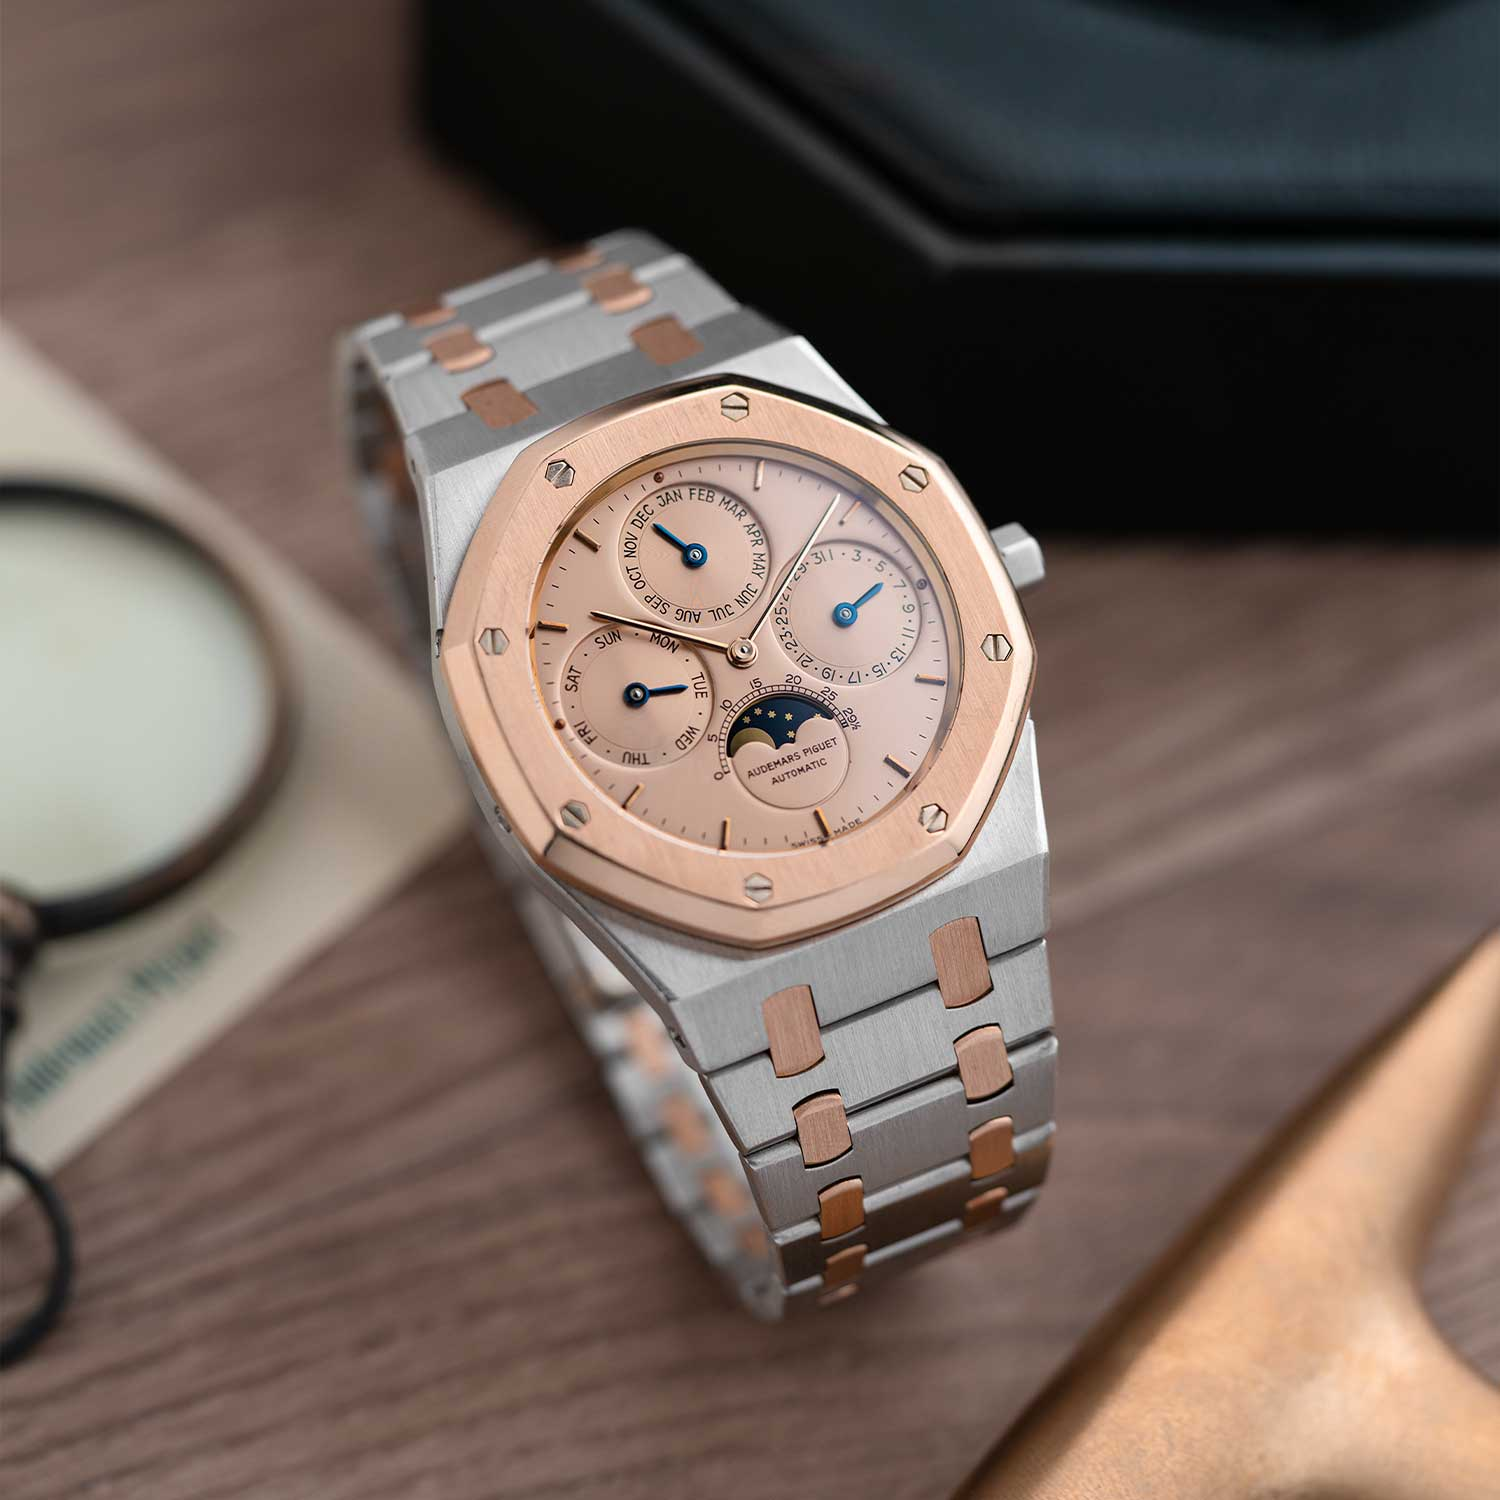 The Royal Oak Perpetual Calendar ref. 25686PR, rose gold and platinum with a rose gold dial; the watch seen here is presently part of the Pygmalion Gallery's private collection (Image: Photo and watch, property of Pygmalion Gallery)